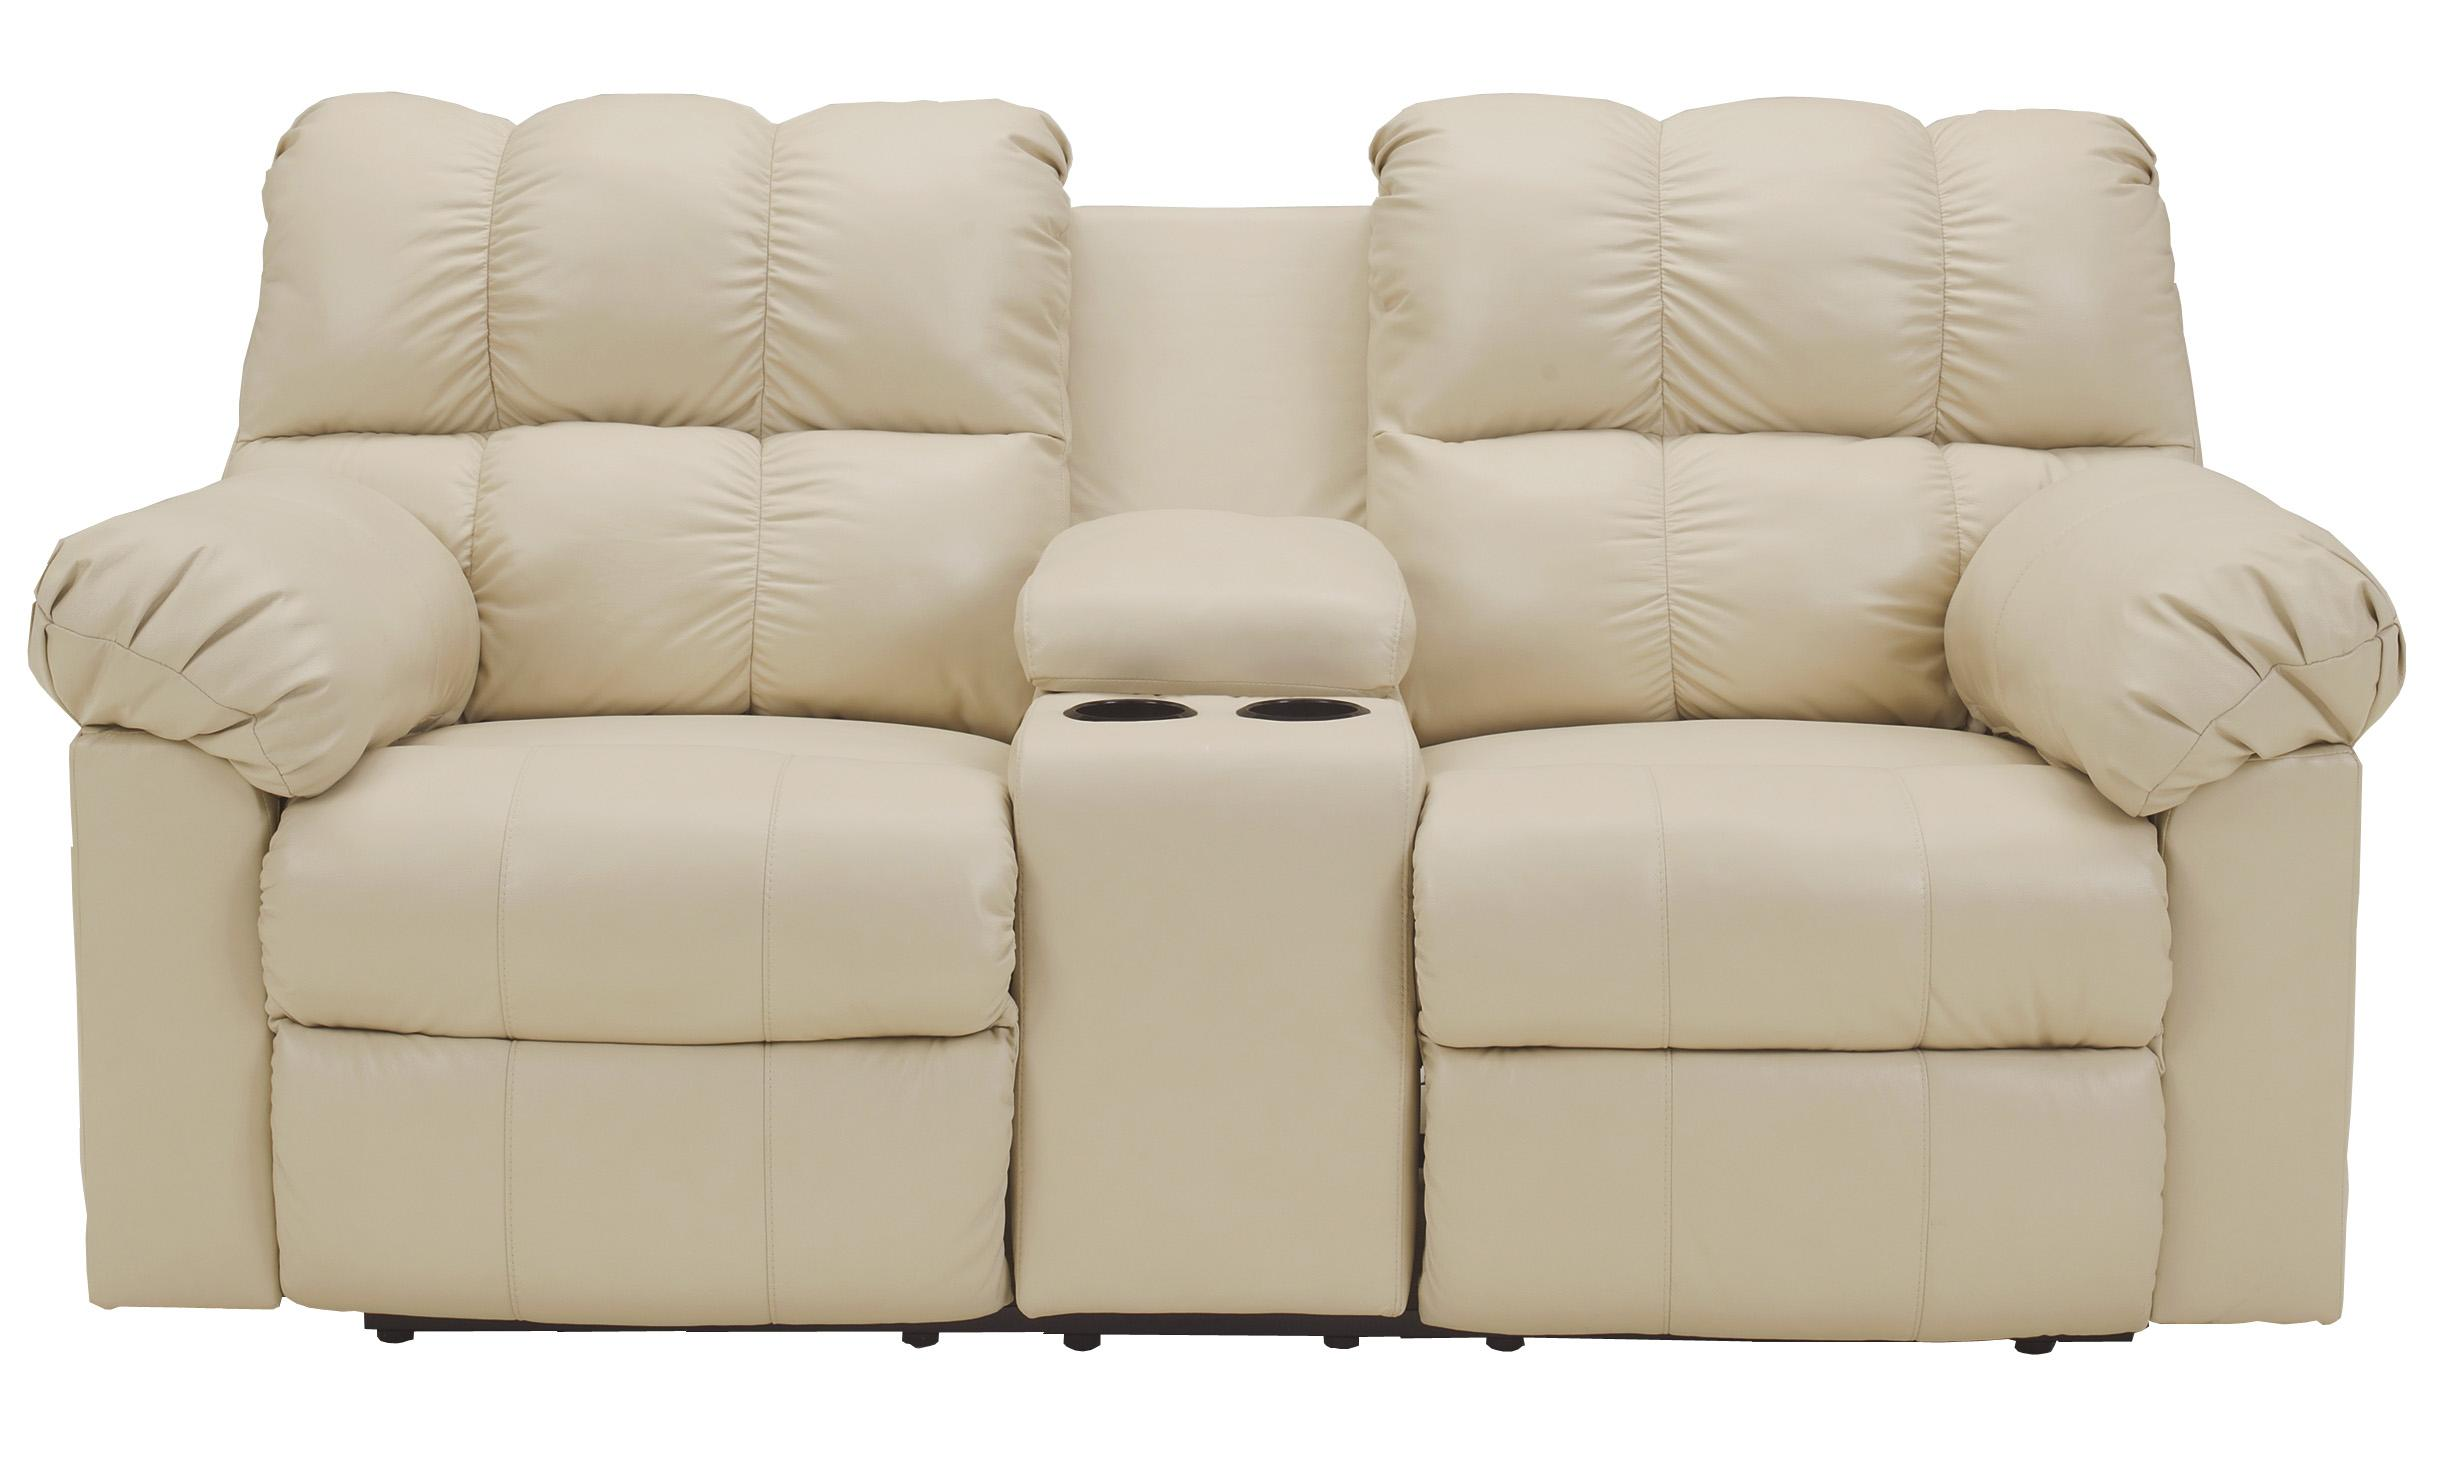 Signature Design by Ashley Kennard - Cream Dbl Rec Pwr Love Seat w/Console - Item Number: 2900296